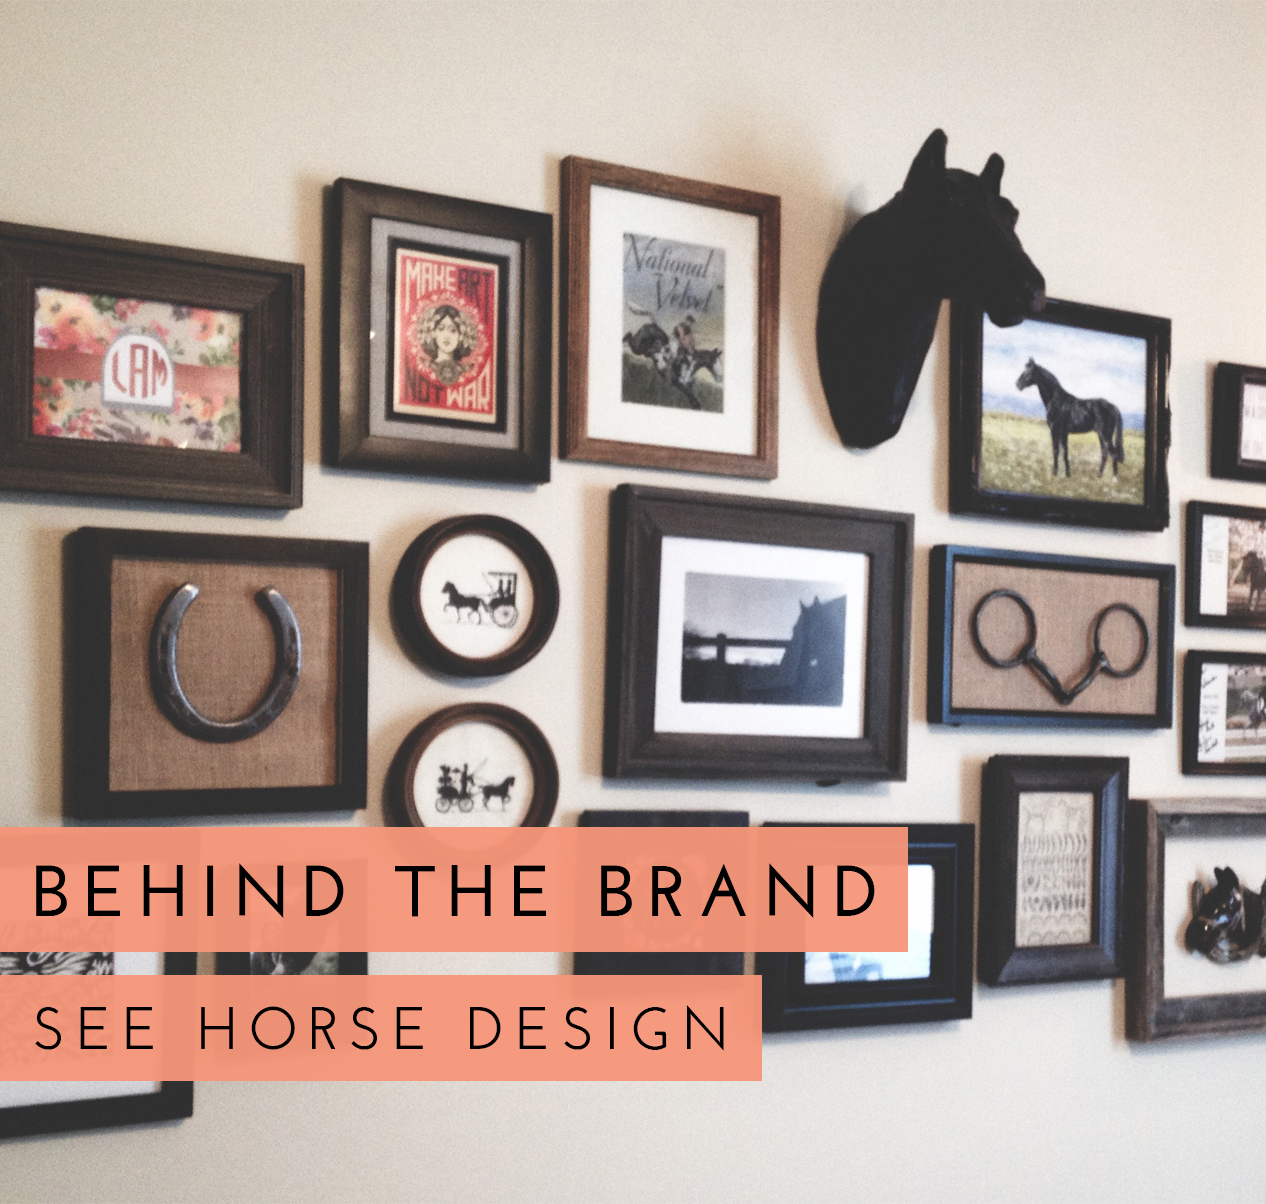 Behind the Brand: See Horse Design (seehorsedesign.com)